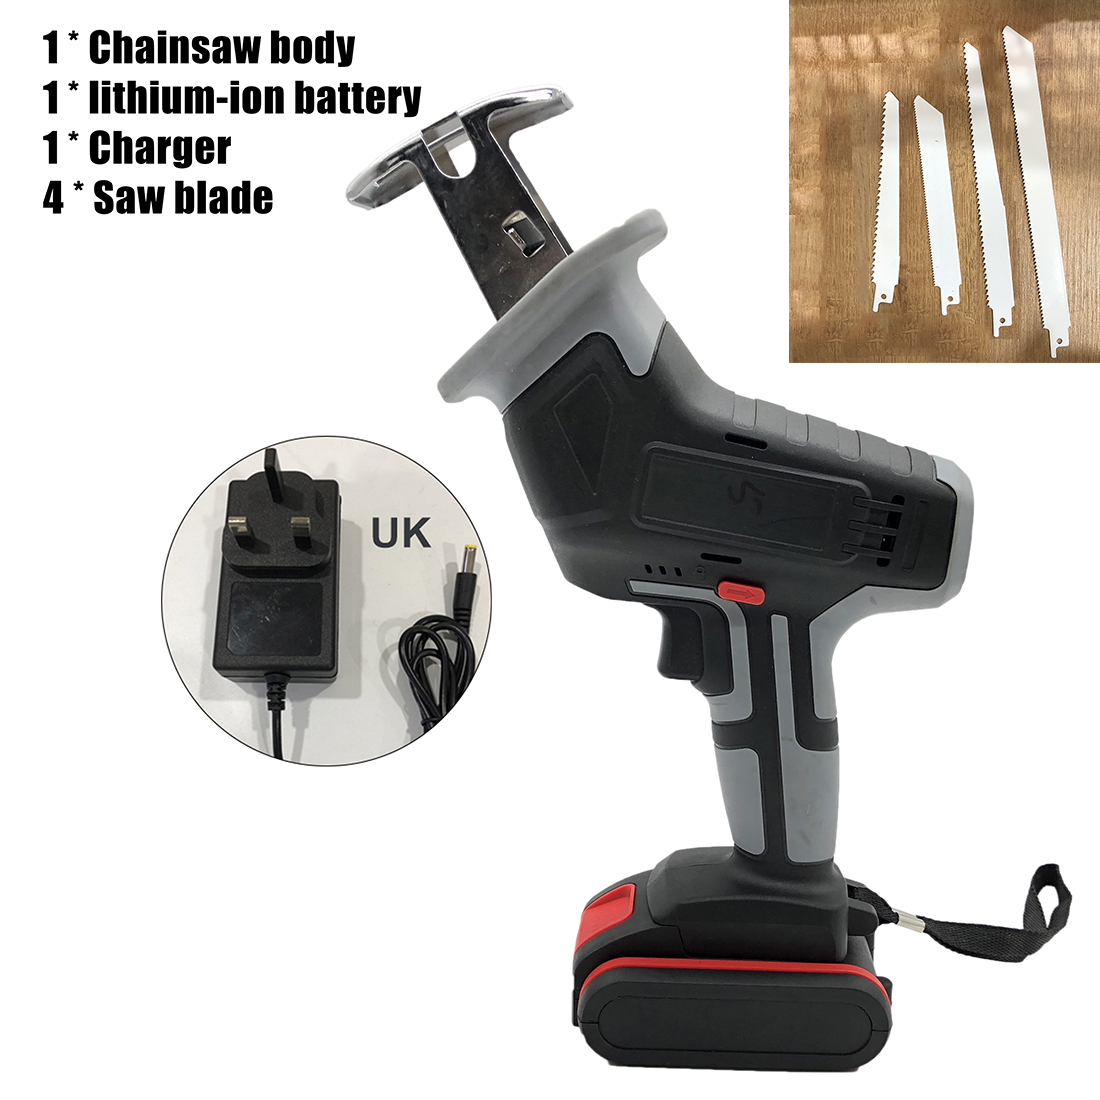 18V Cordless Reciprocating Saw 4 Saw Blades Metal Cutting Wood Tool Portable Woodworking Cutters With Battery 3000spm Power Tool|Electric Saws| |  - title=